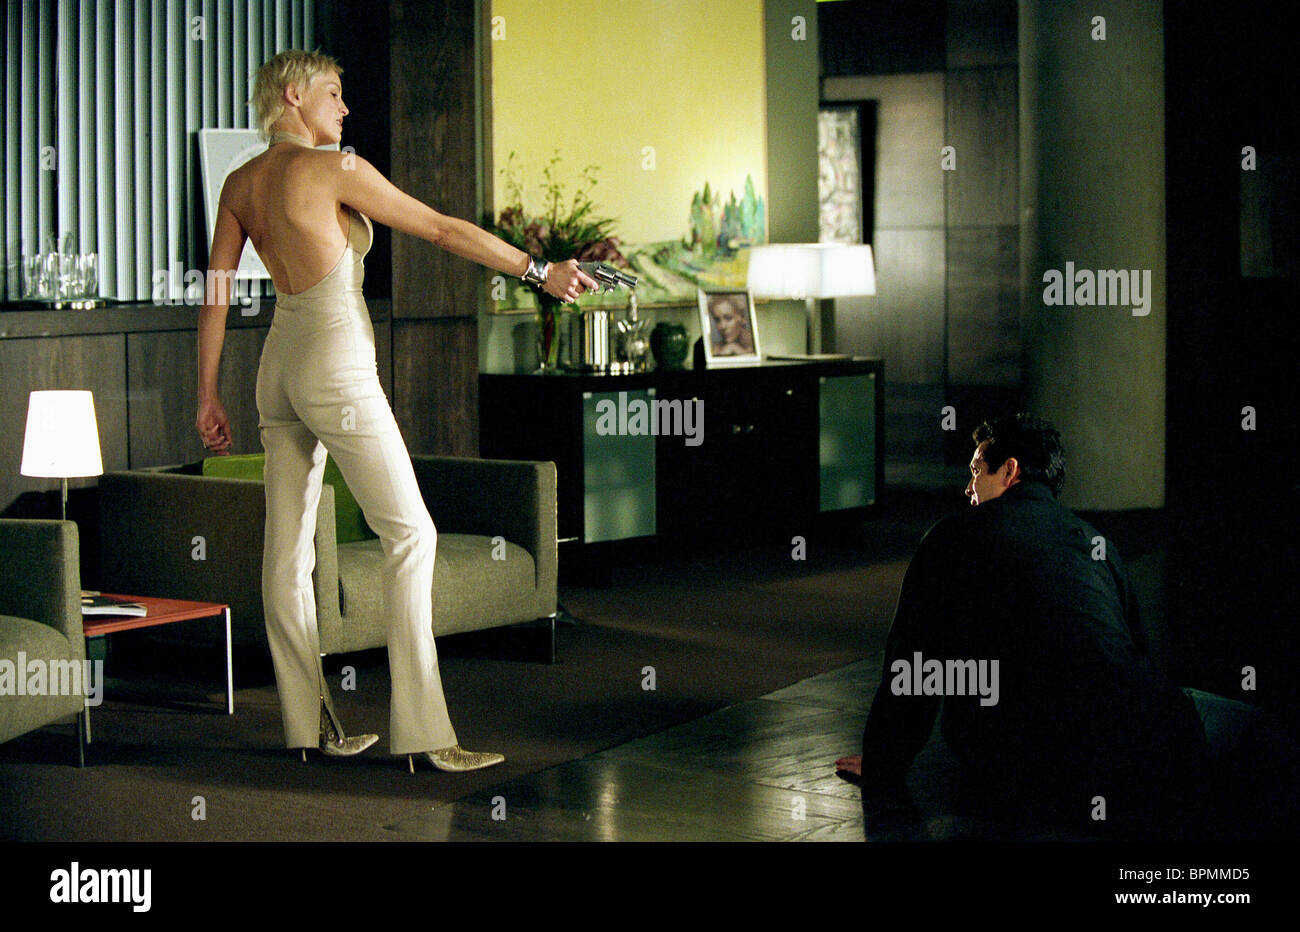 Sharon Stone Benjamin Bratt Catwoman 2004 Stock Photo 31187889